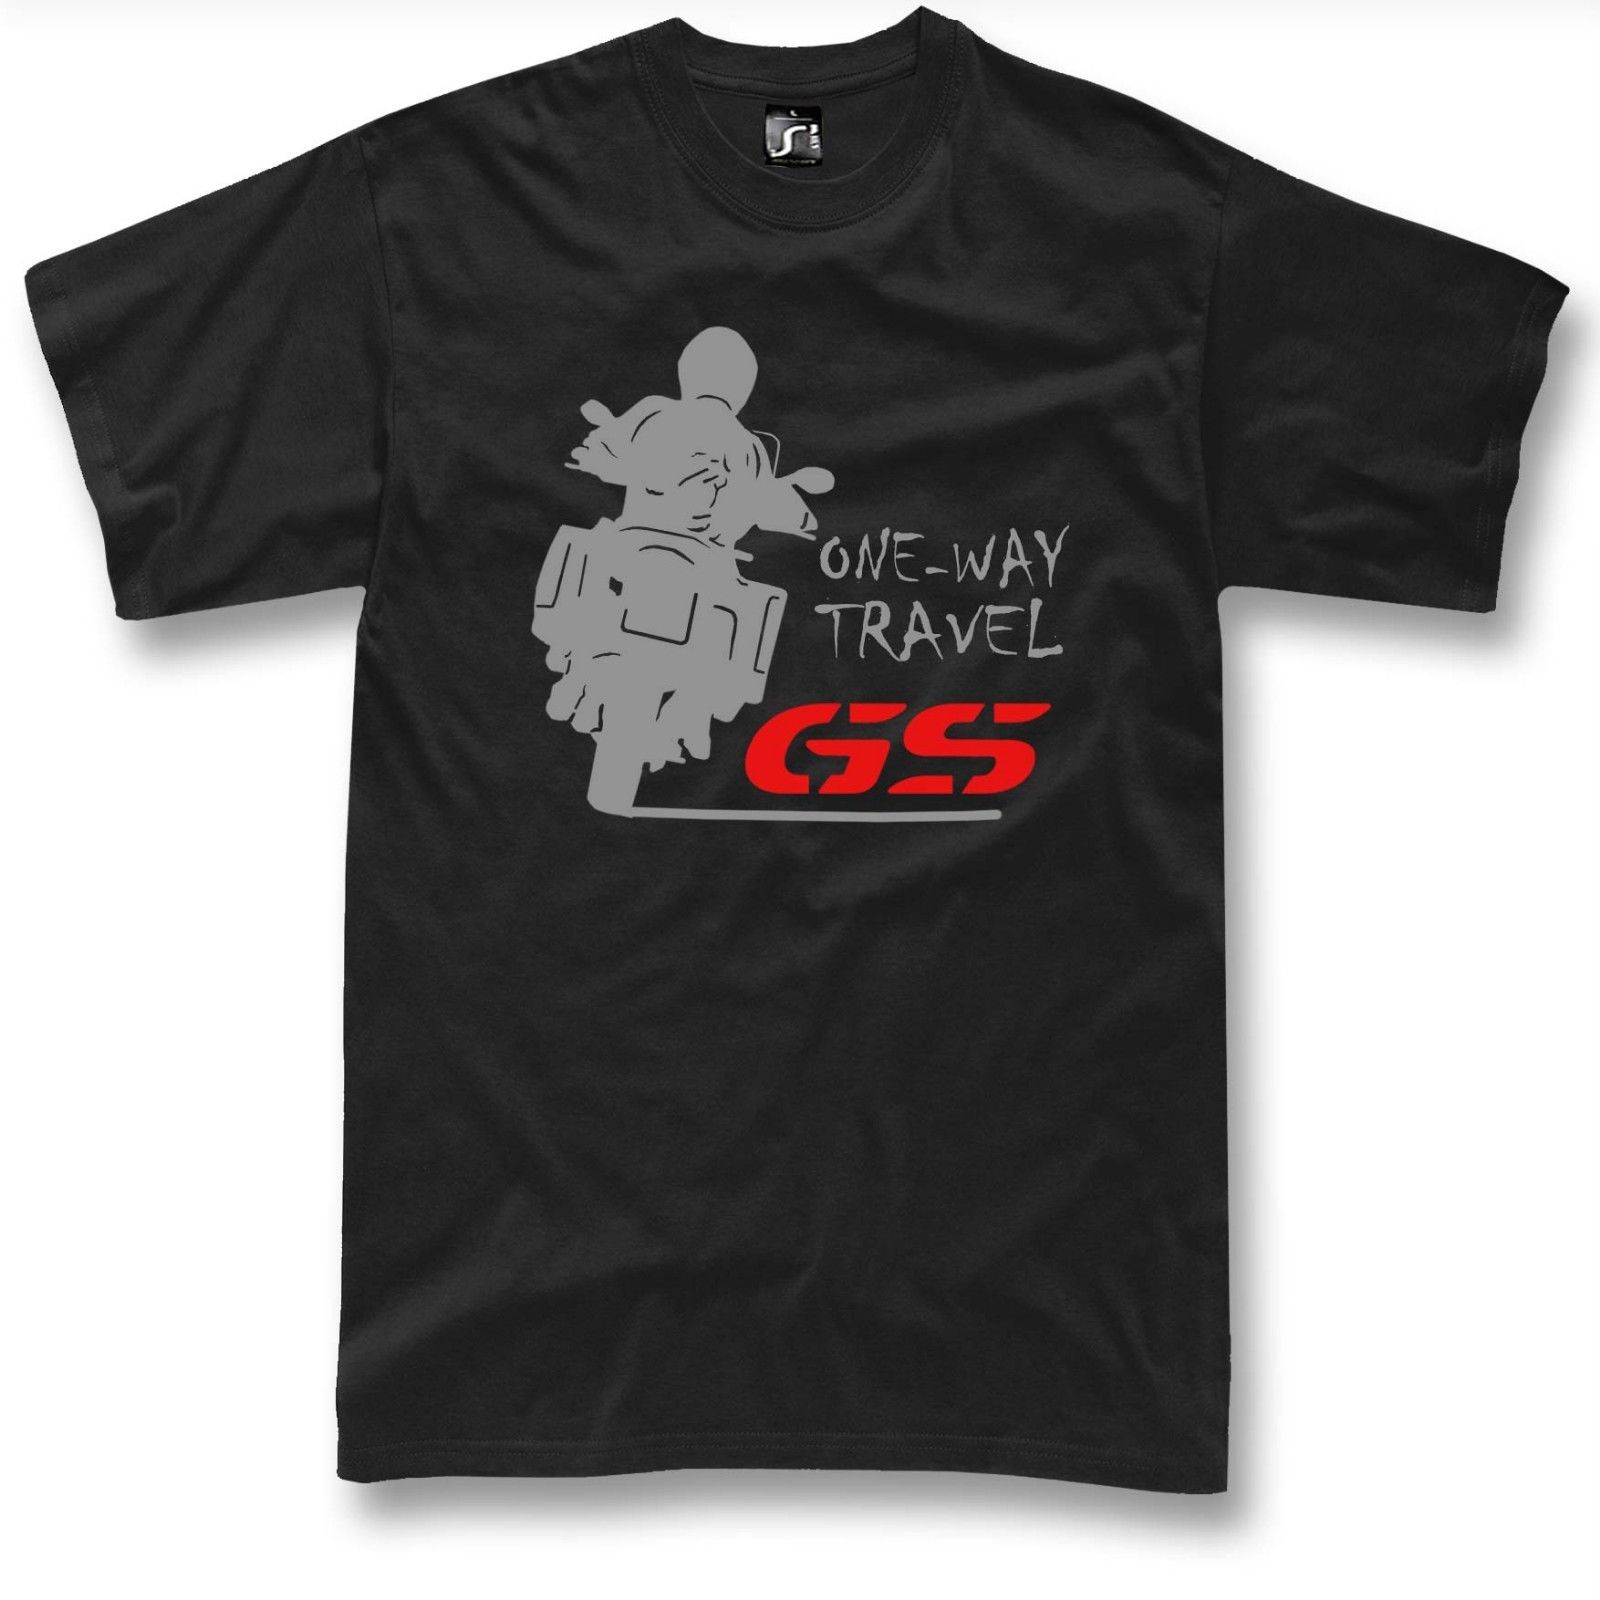 GS T Shirt R 650 800 1150 1200 Motorrad fans tshirt Boxer S - 5XL Short Sleeves New Fashion T-Shirt Men Clothing ...